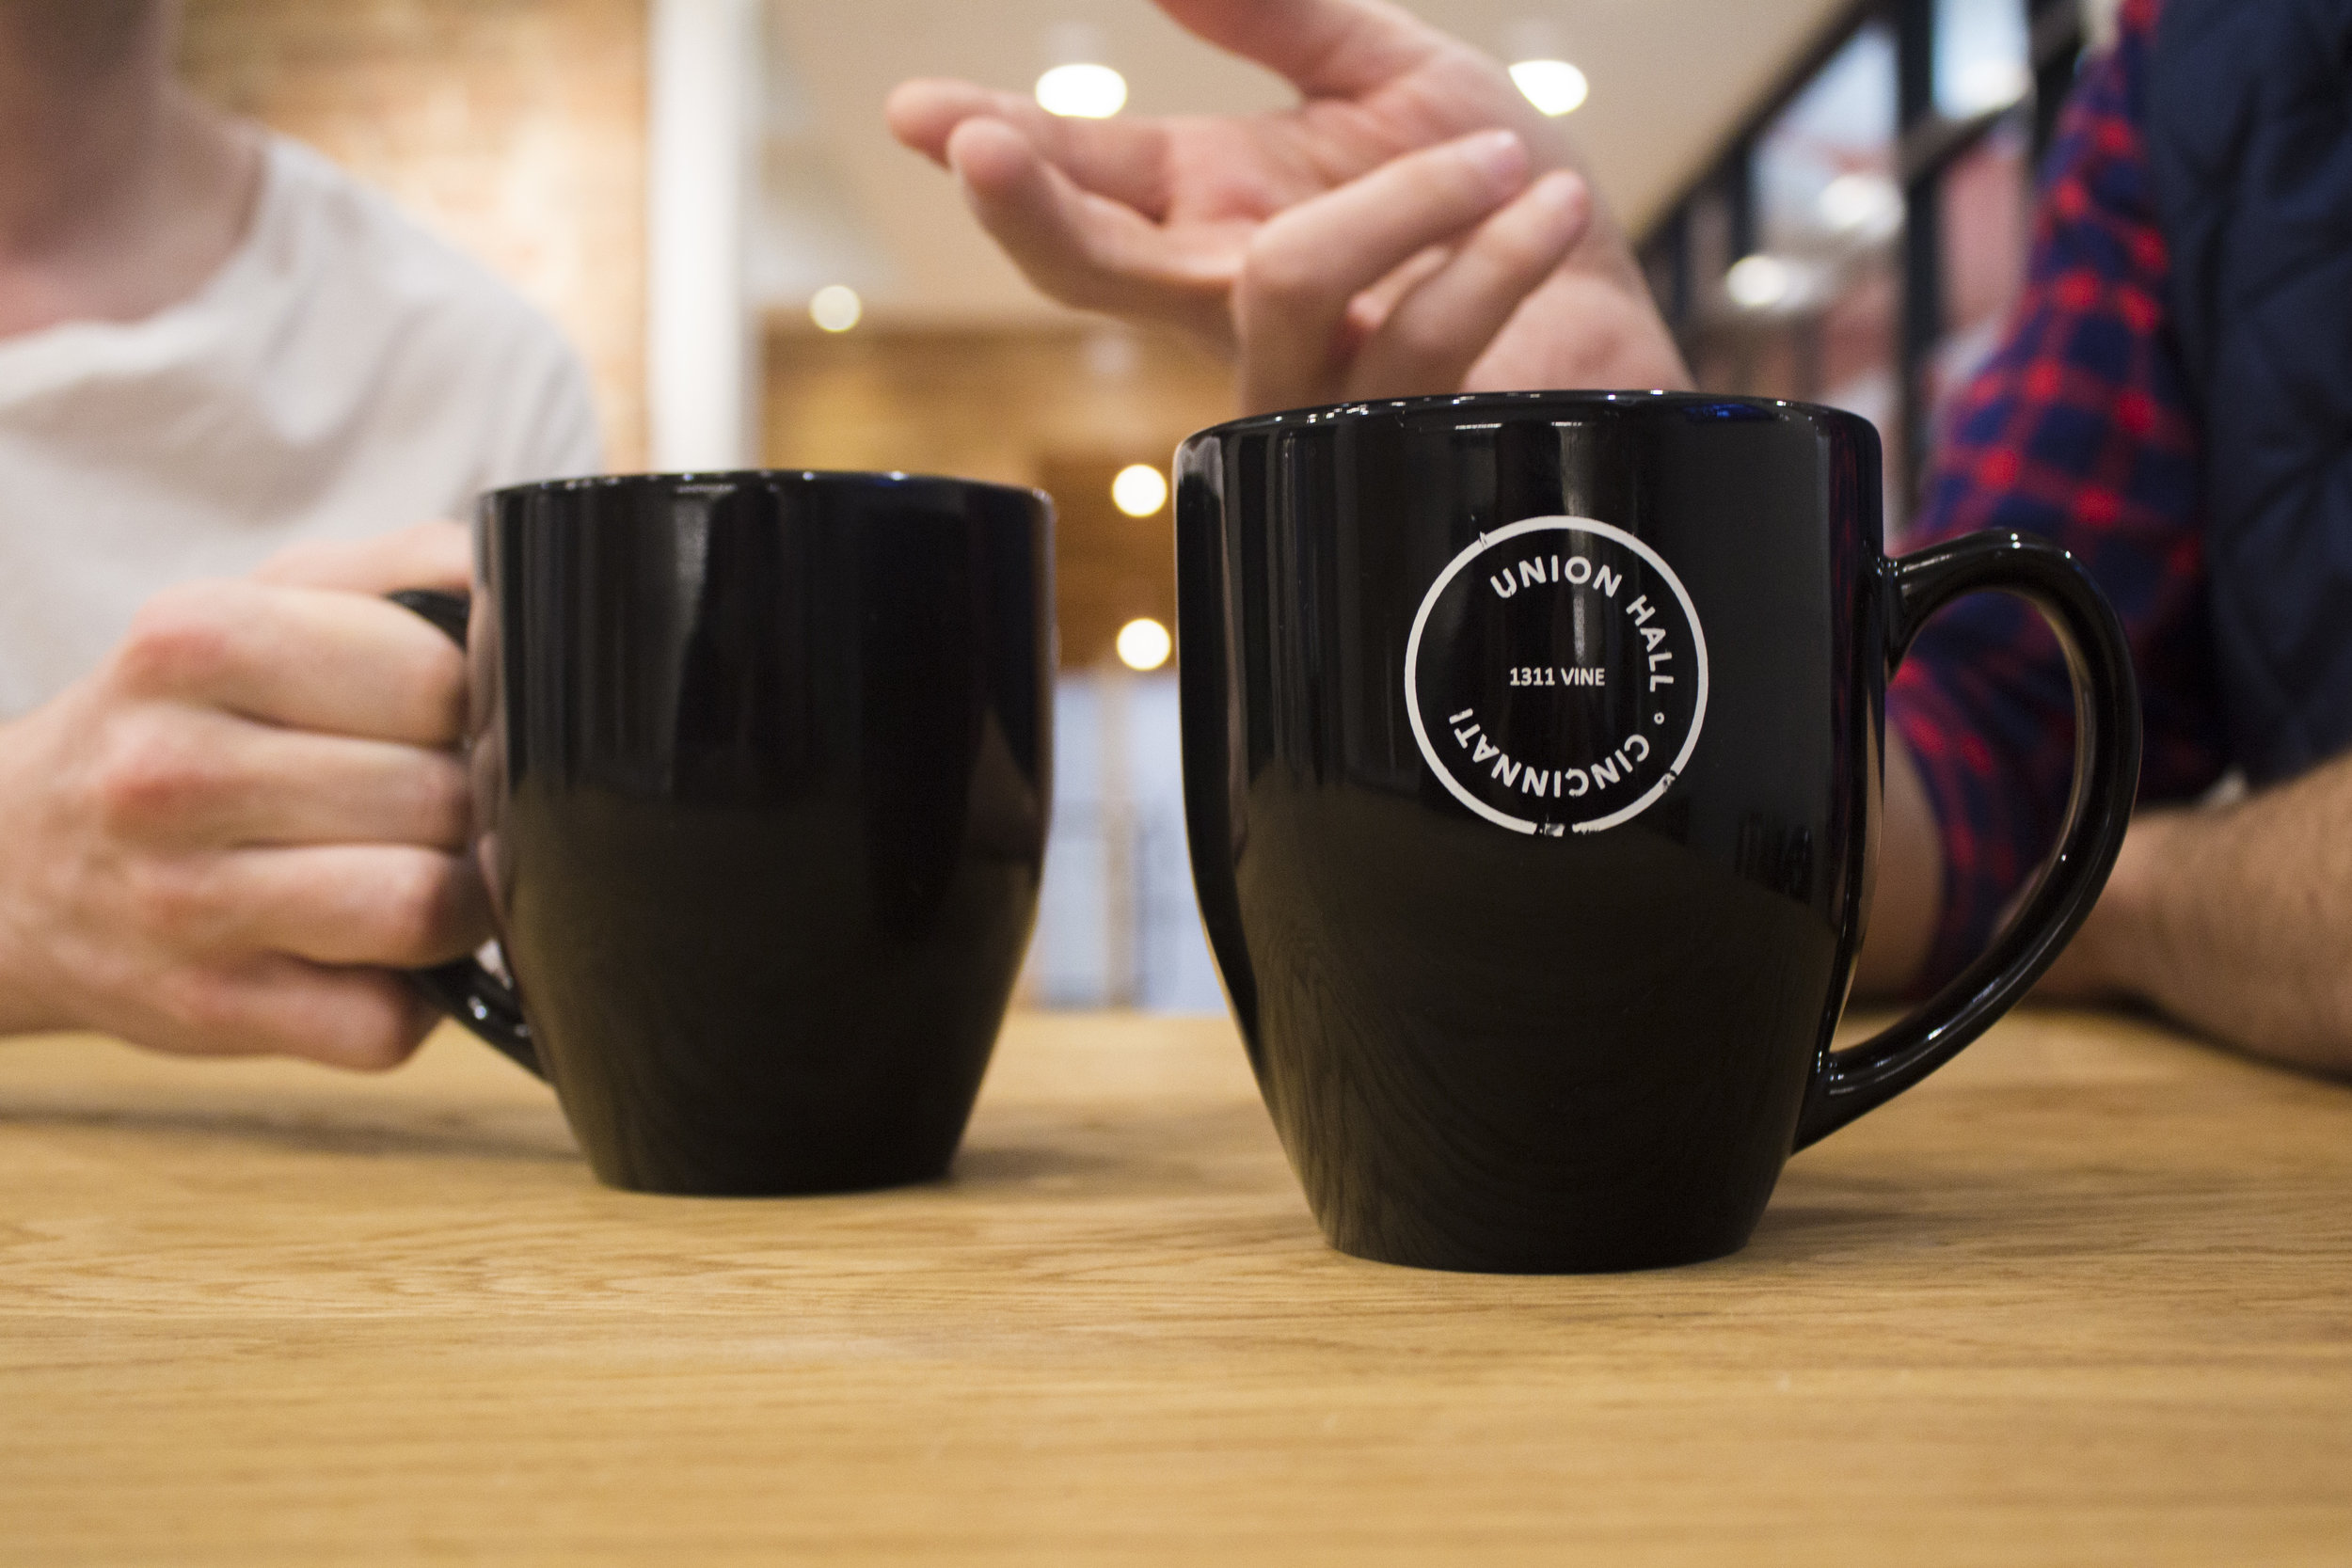 We help social entrepreneurs build and scale businesses with social purpose - Interested in chatting with us? Let's grab a coffee together. No obligation, no fee. Sit down for a 1-on-1 session with experts to discus how to build and scale your social enterprise.info@flywheelcincinnati.org